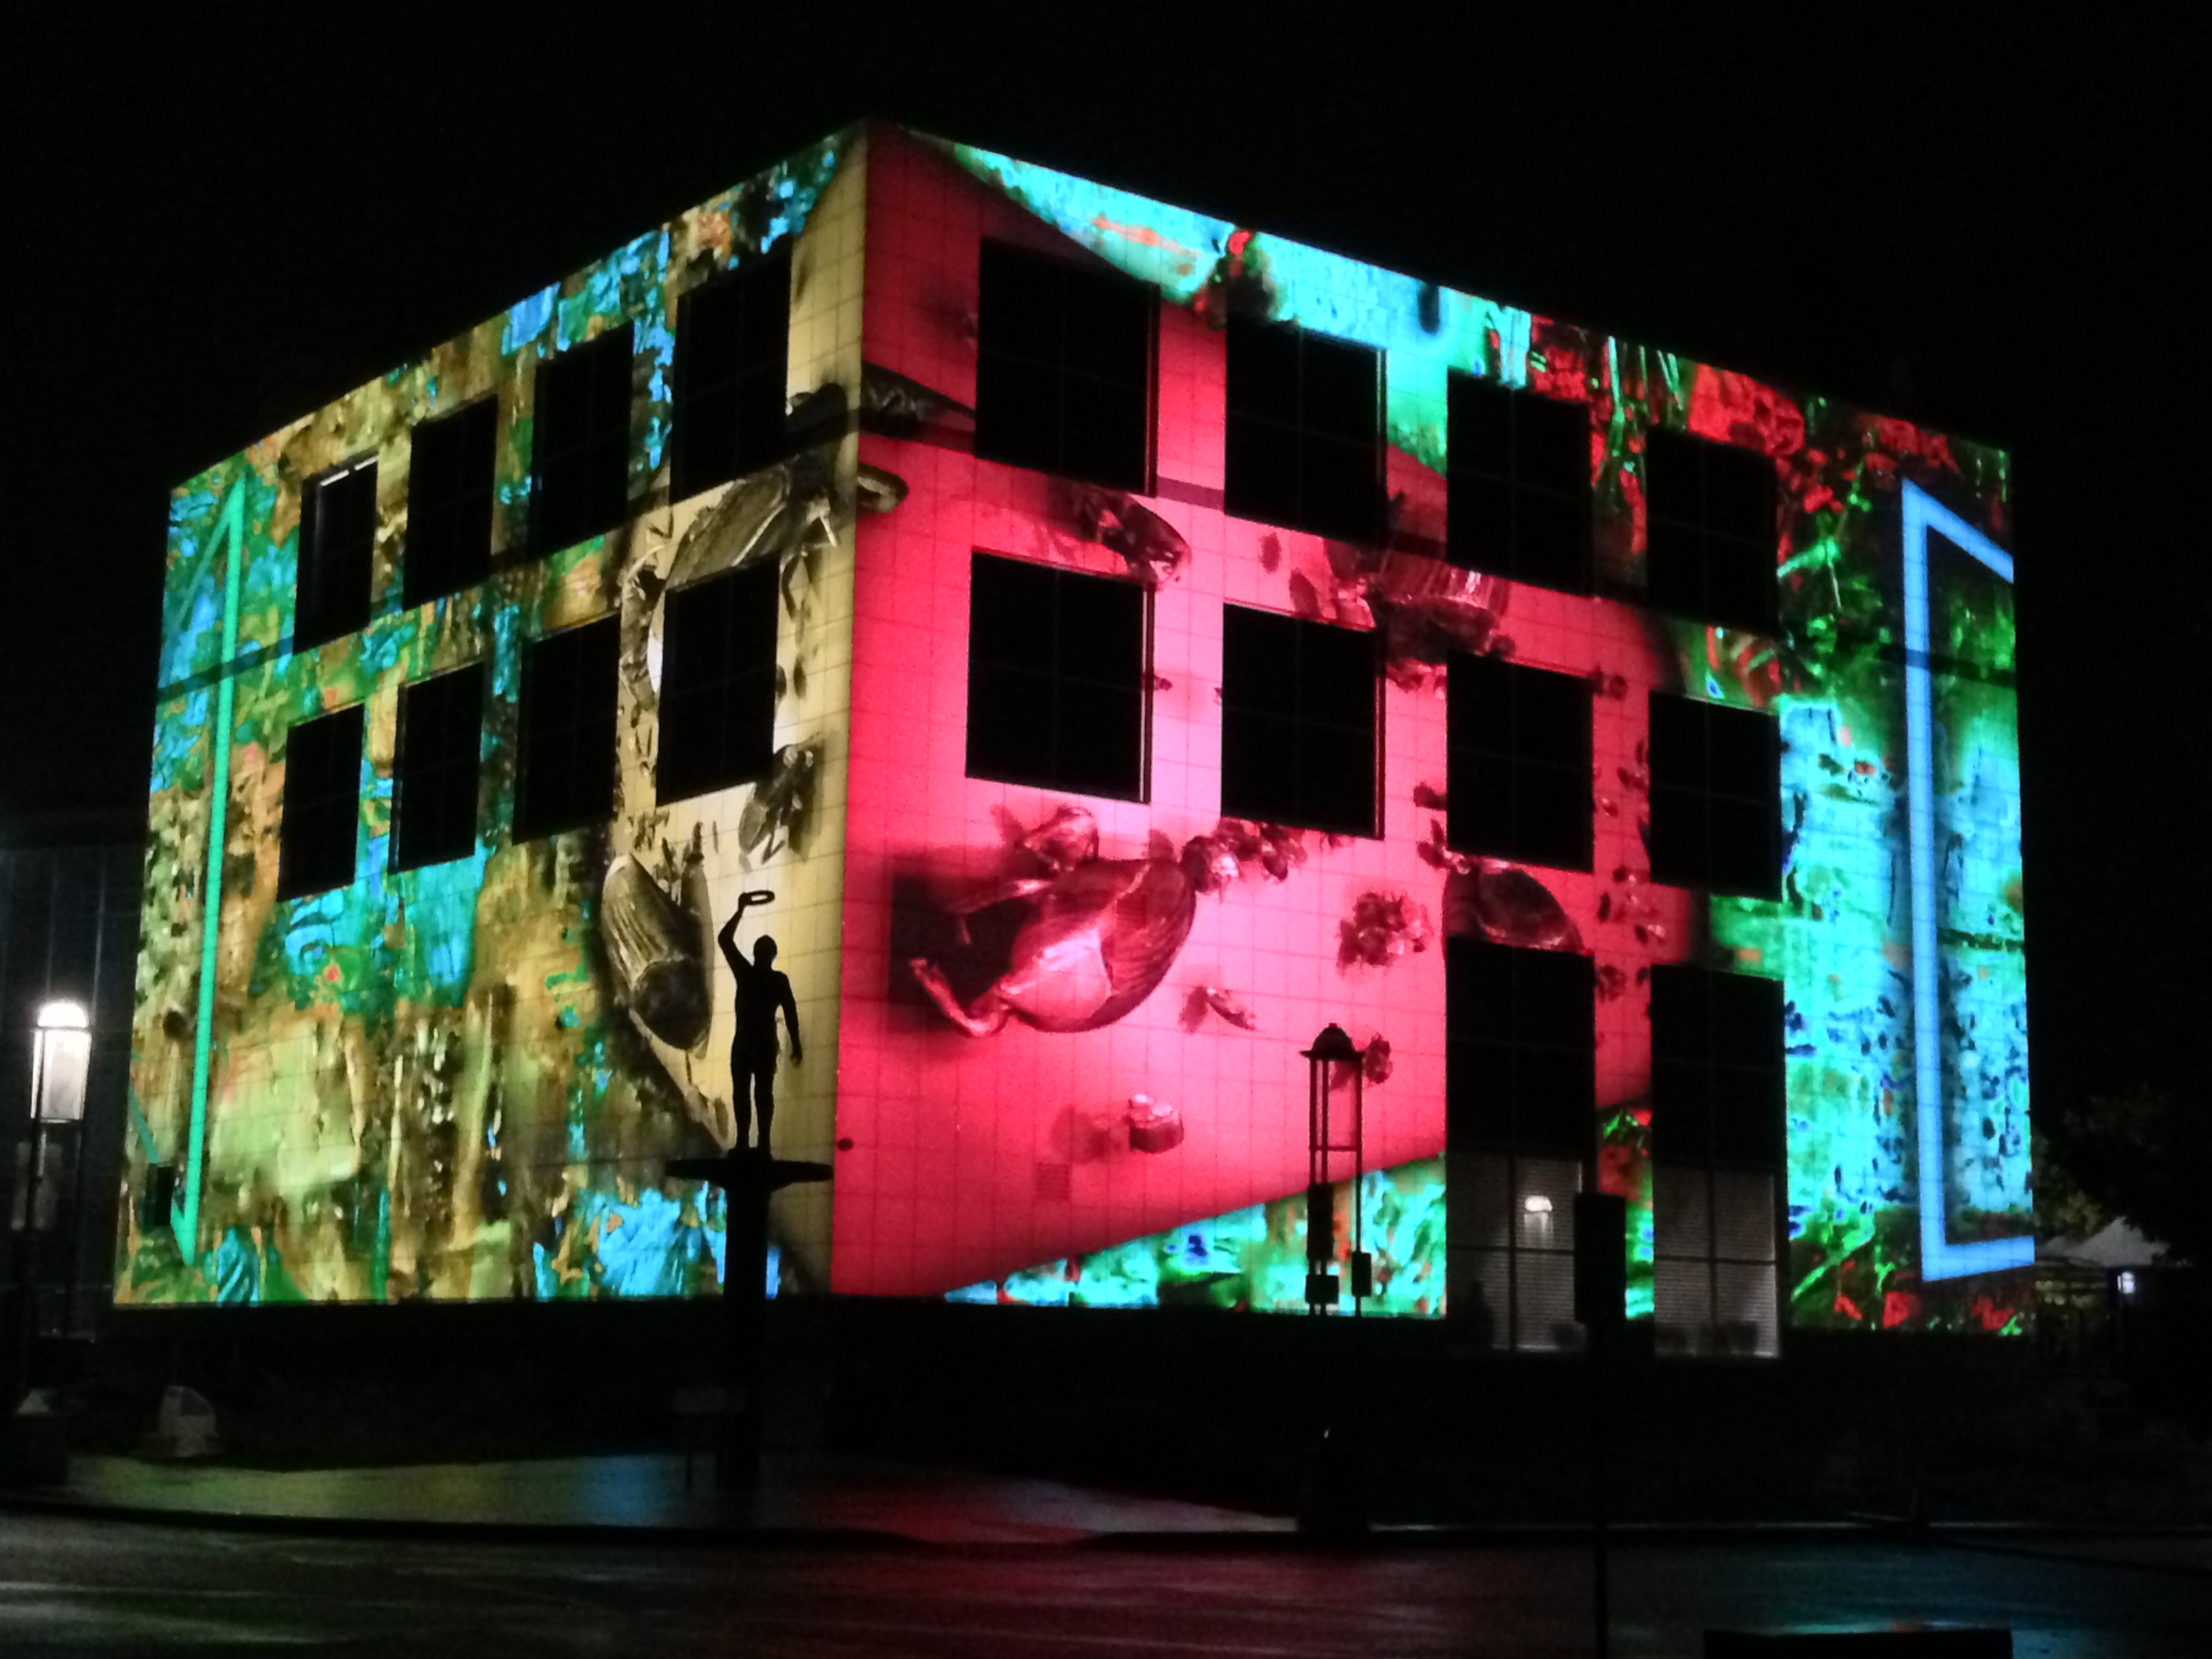 Building with coloured lights projected onto it